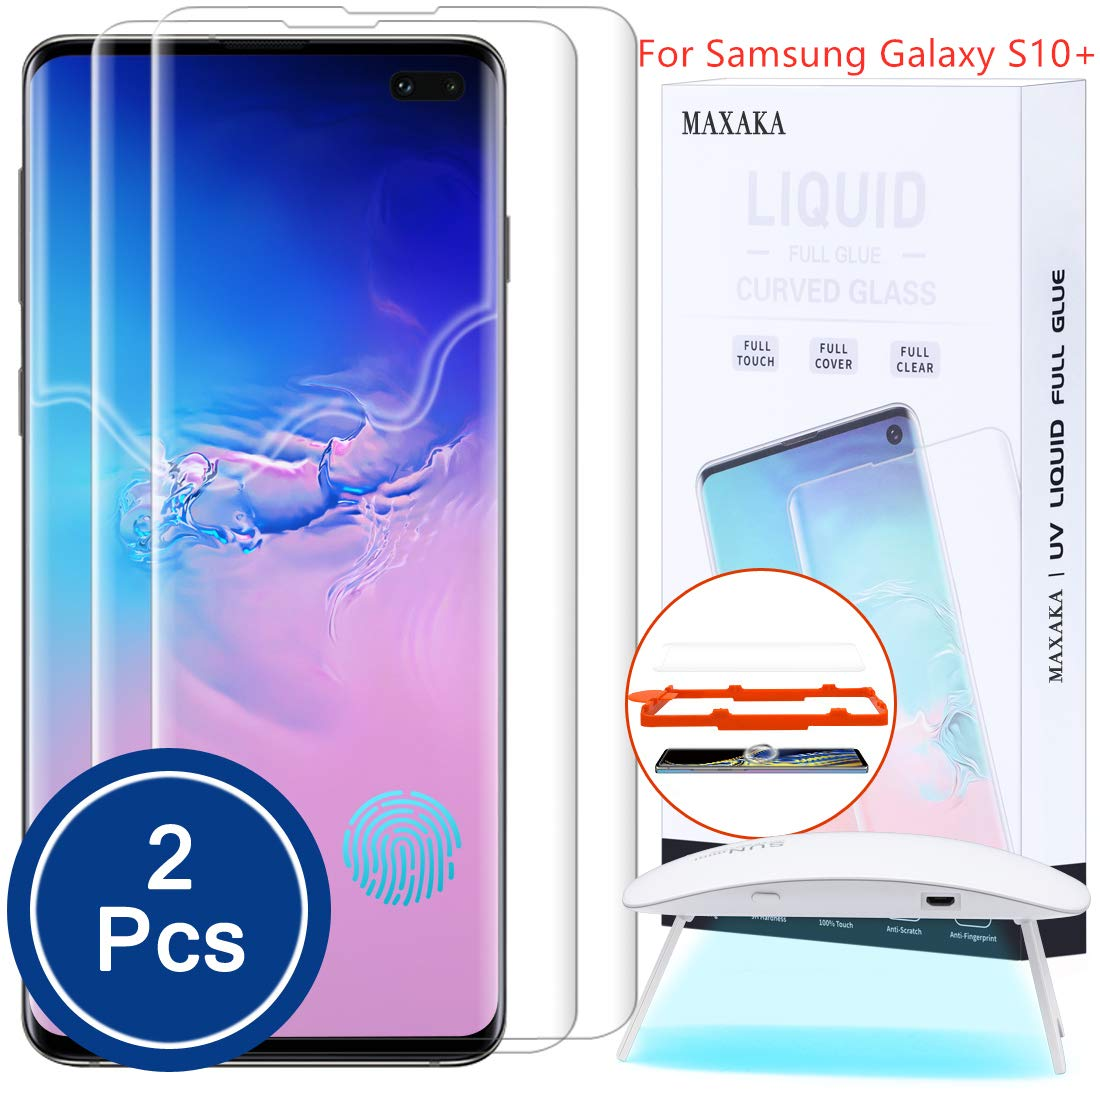 Maxaka Galaxy S10 Plus Screen Protector Tempered Glass, 0.2mm 3D Curved Edge Shield Liquid Dispersion Tech Adhesive Repair Function, UV Light Easy Install Full Kit for Samsung S10P, 2 Pcs Glass by MAXAKA